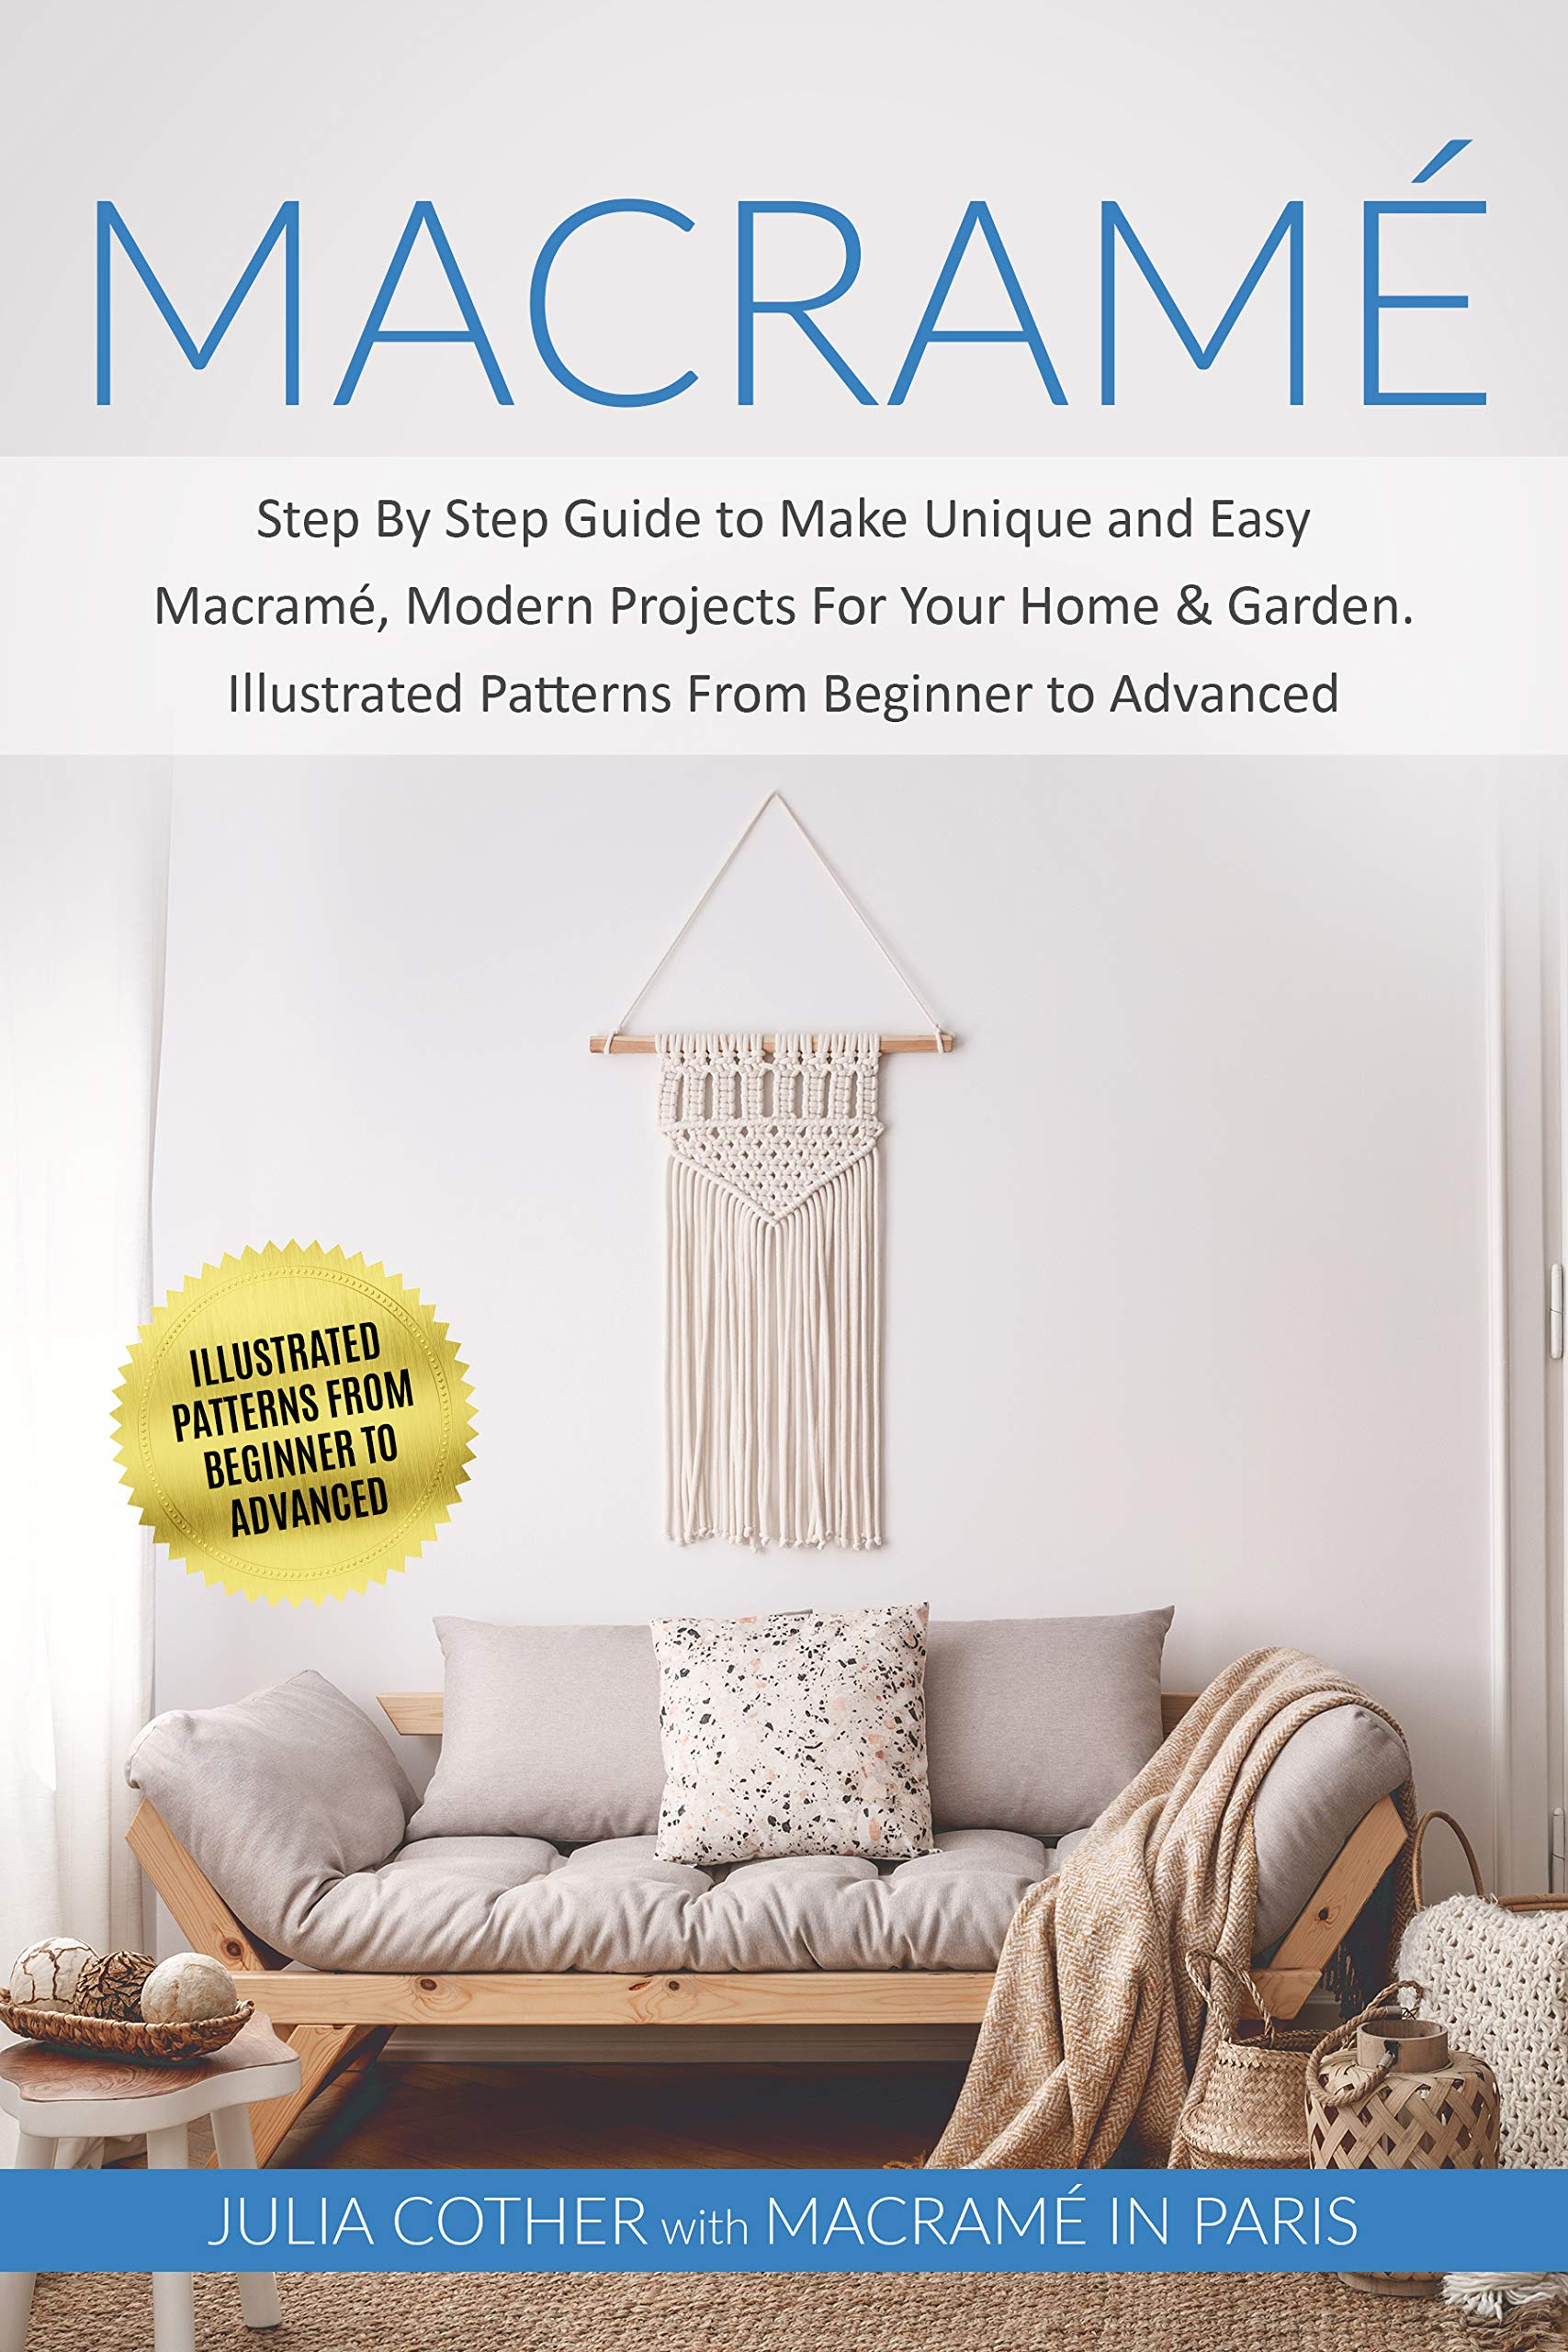 Macramé: Step By Step Guide to Make Unique and Easy Macramé, Modern Projects for Your Home & Garden. Illustrated Patterns From Beginner to Advanced